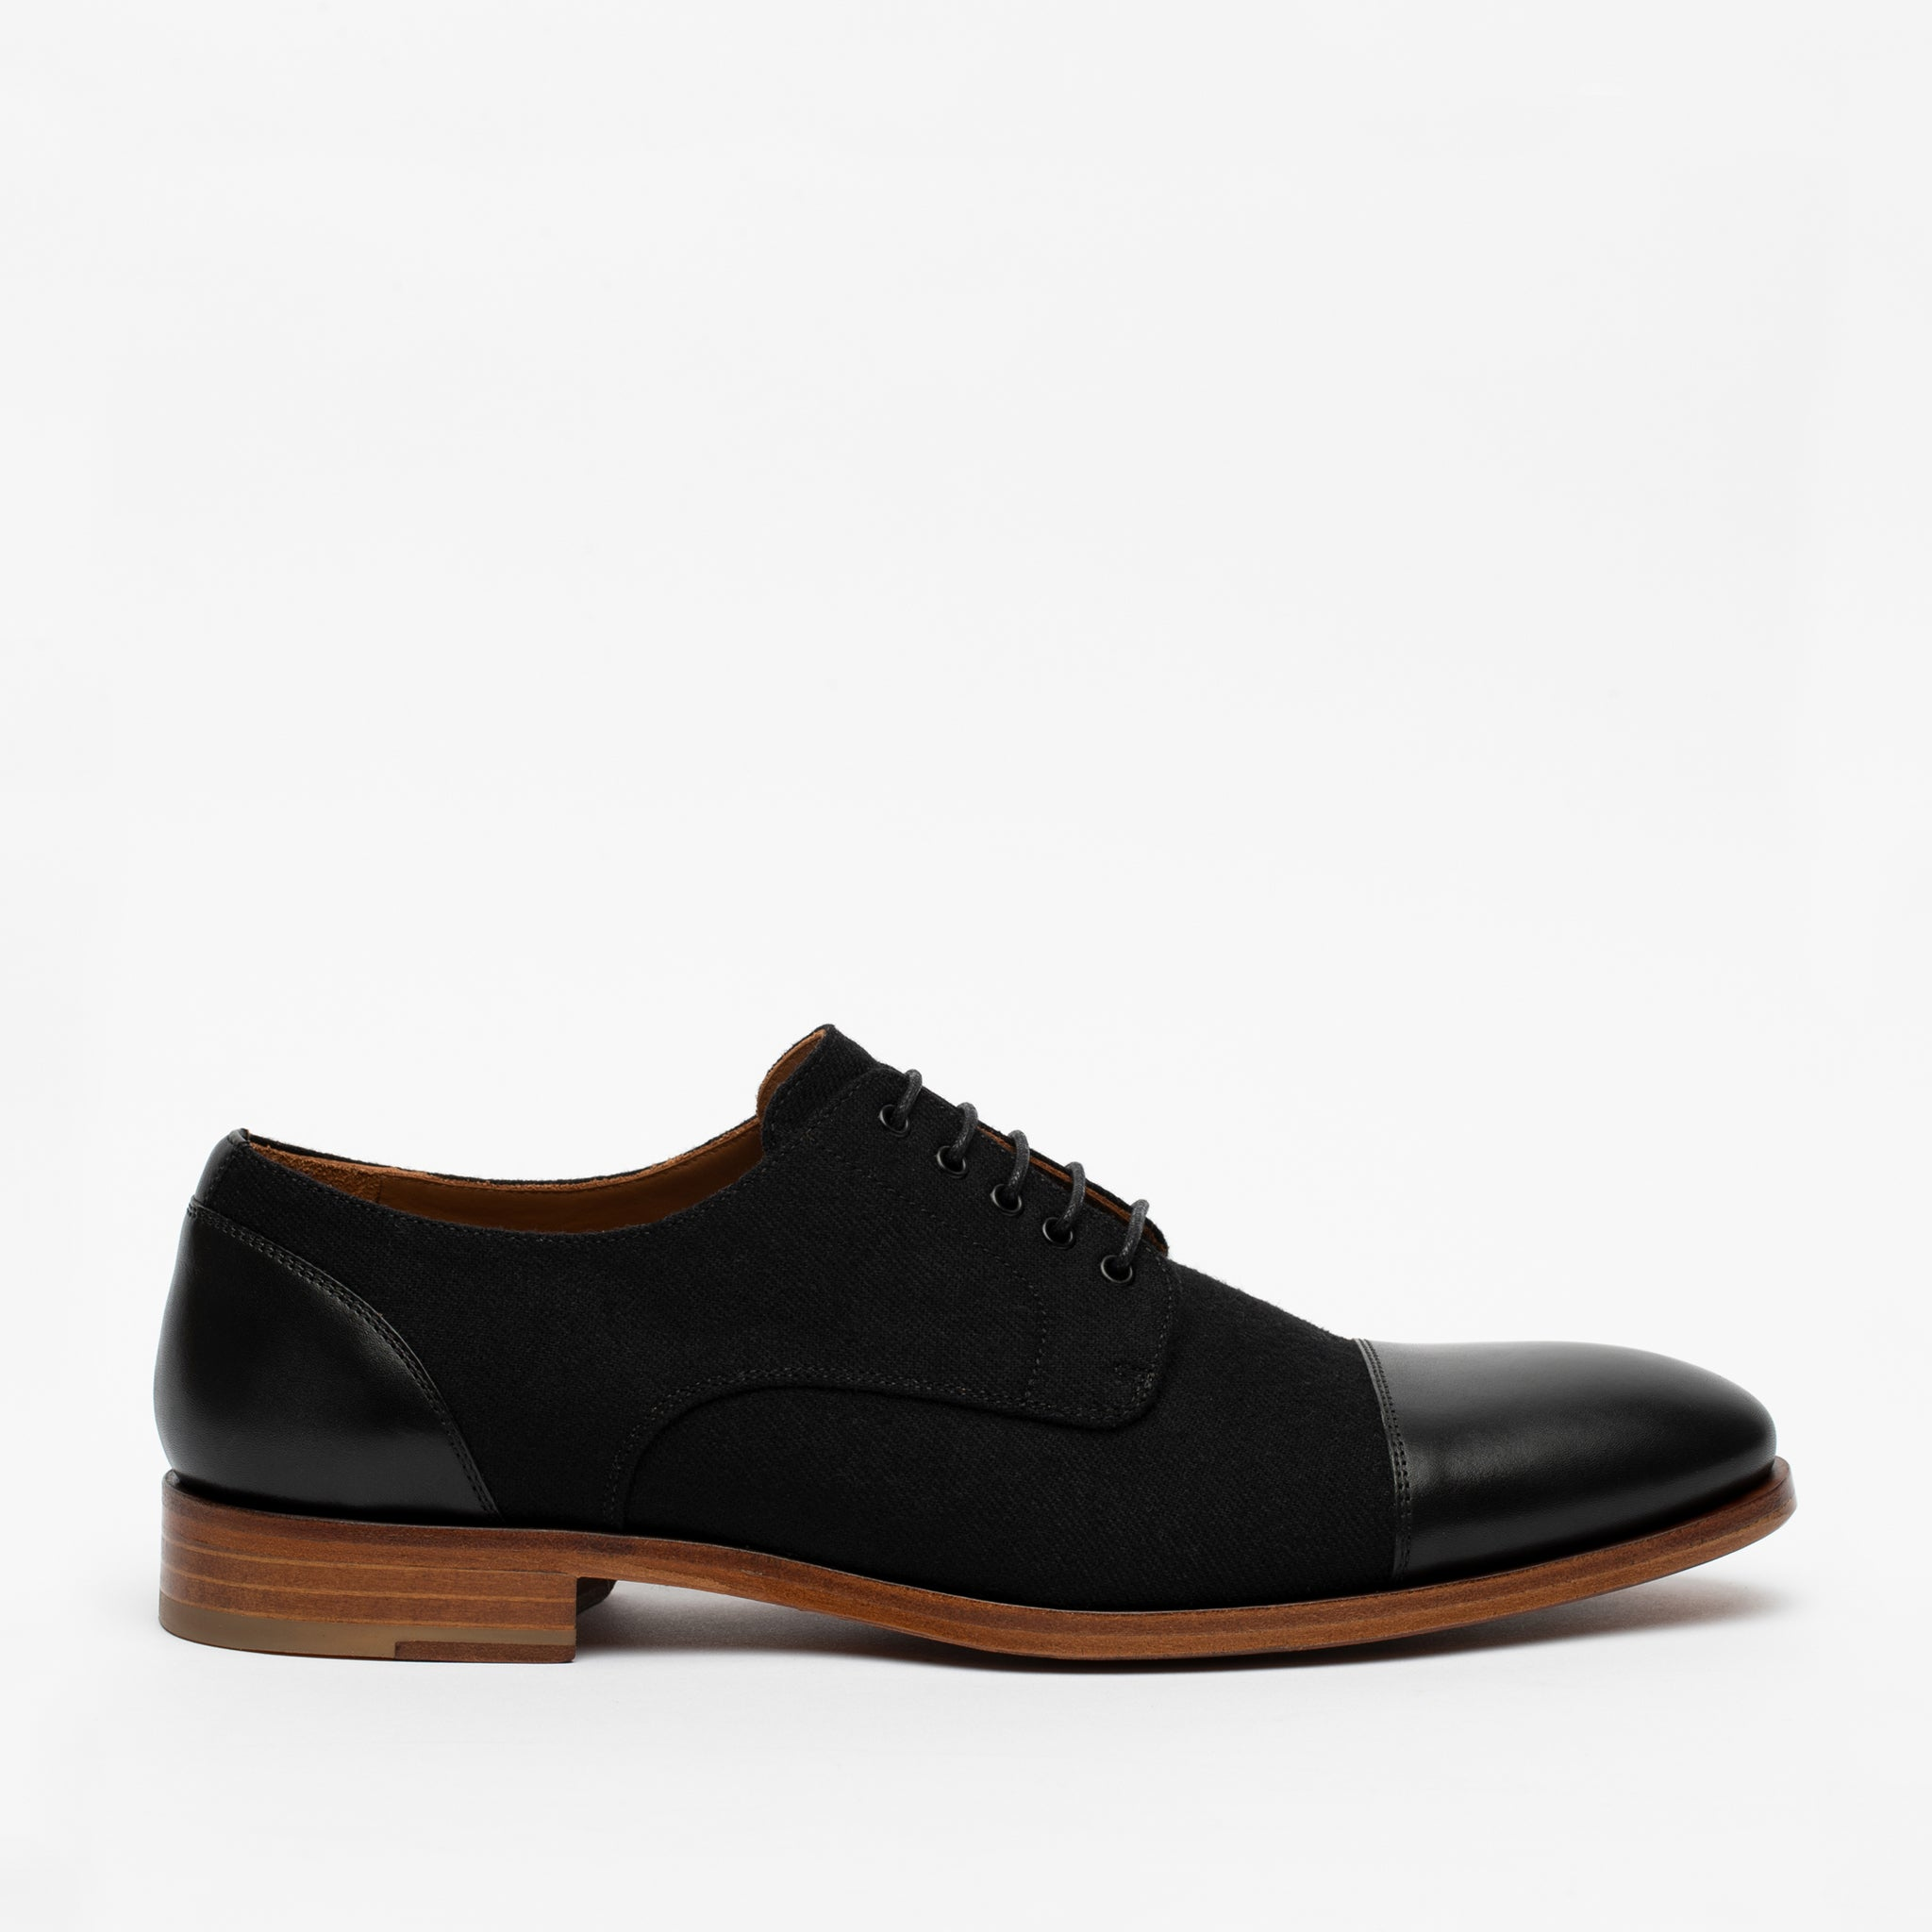 Jack Shoe in Black side view